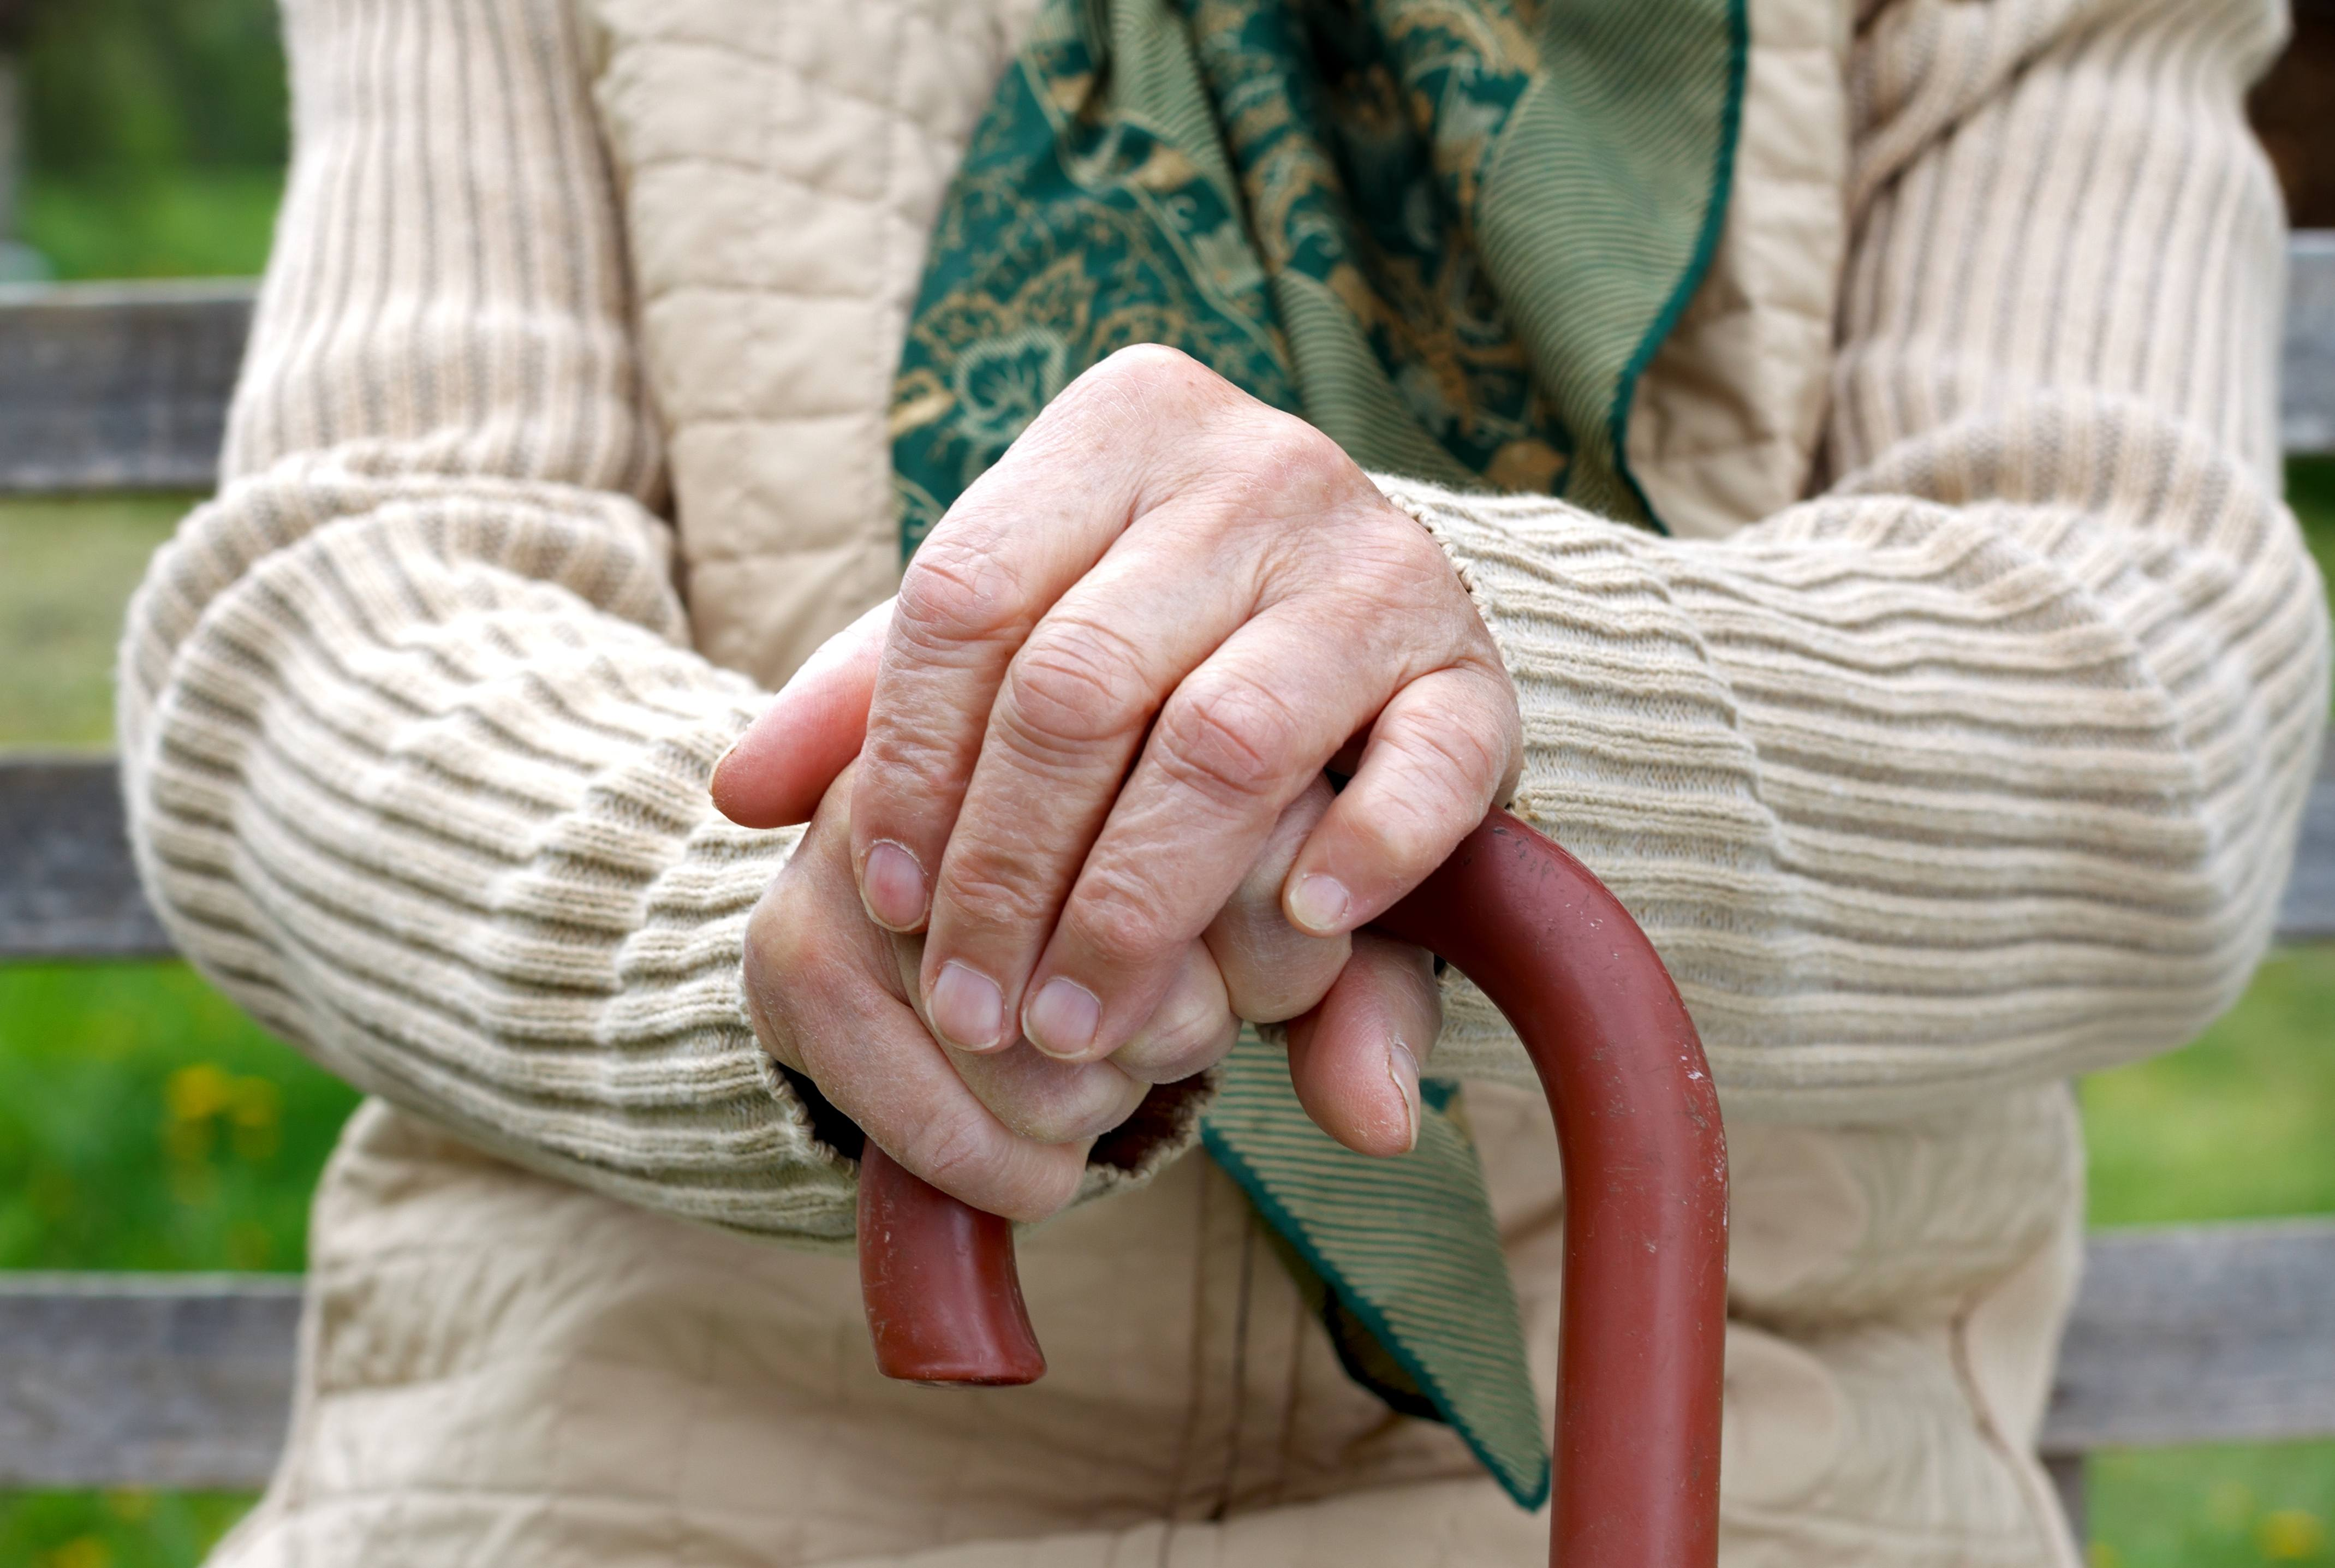 elderly person's hands with a cane